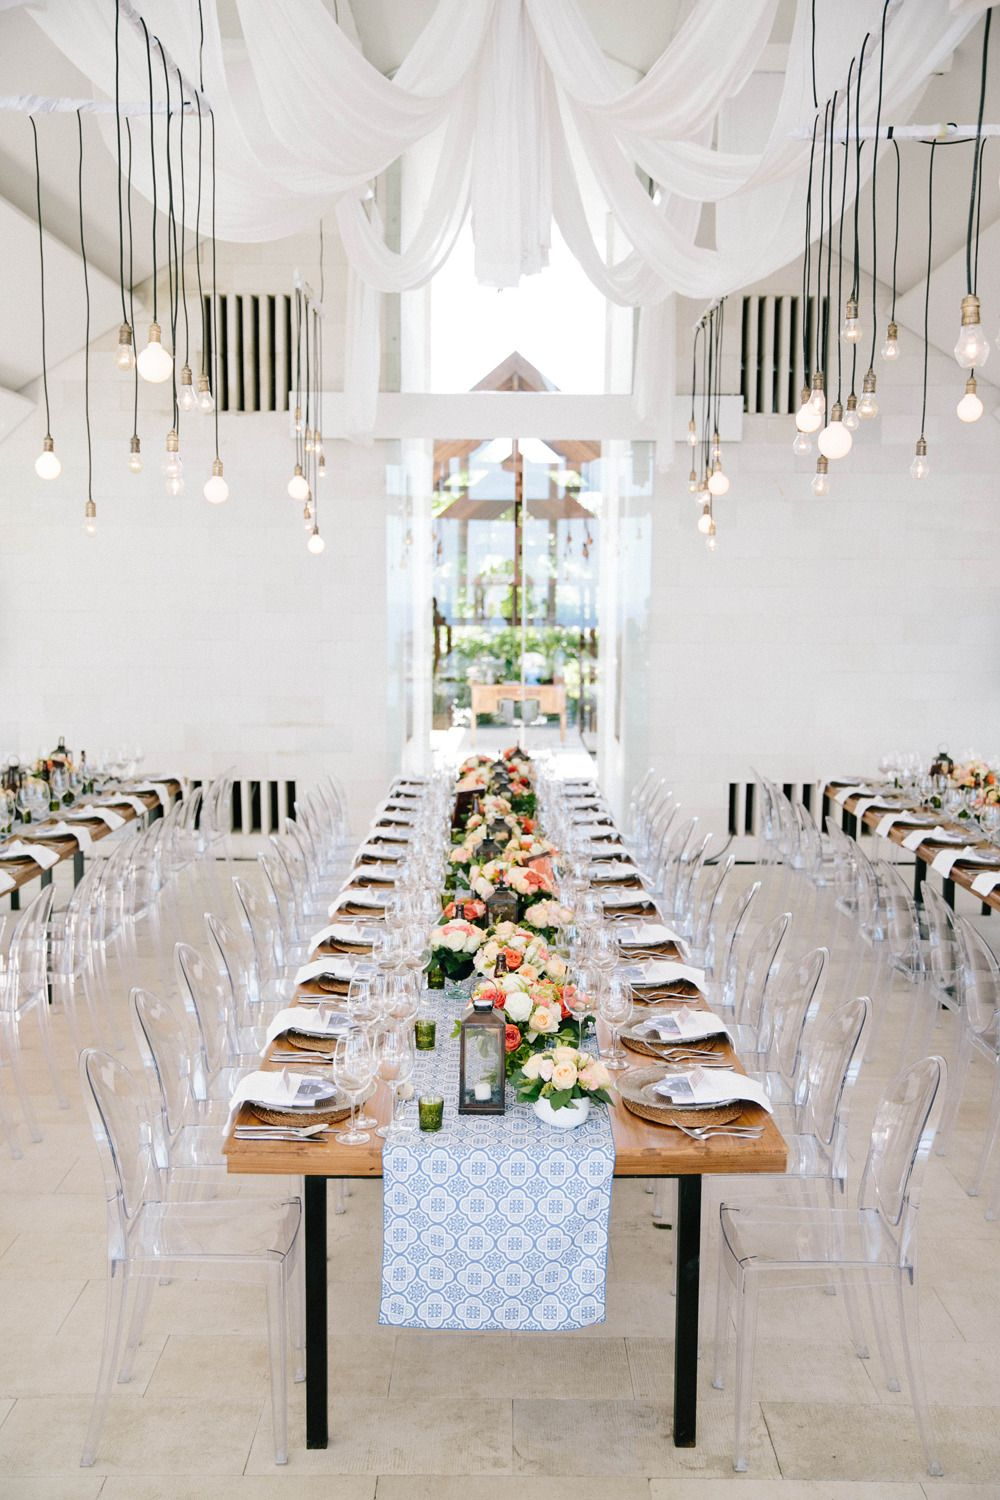 Romantic and Colorful Bali Wedding | Spring wedding colors, Wedding modern,  Ghost chairs